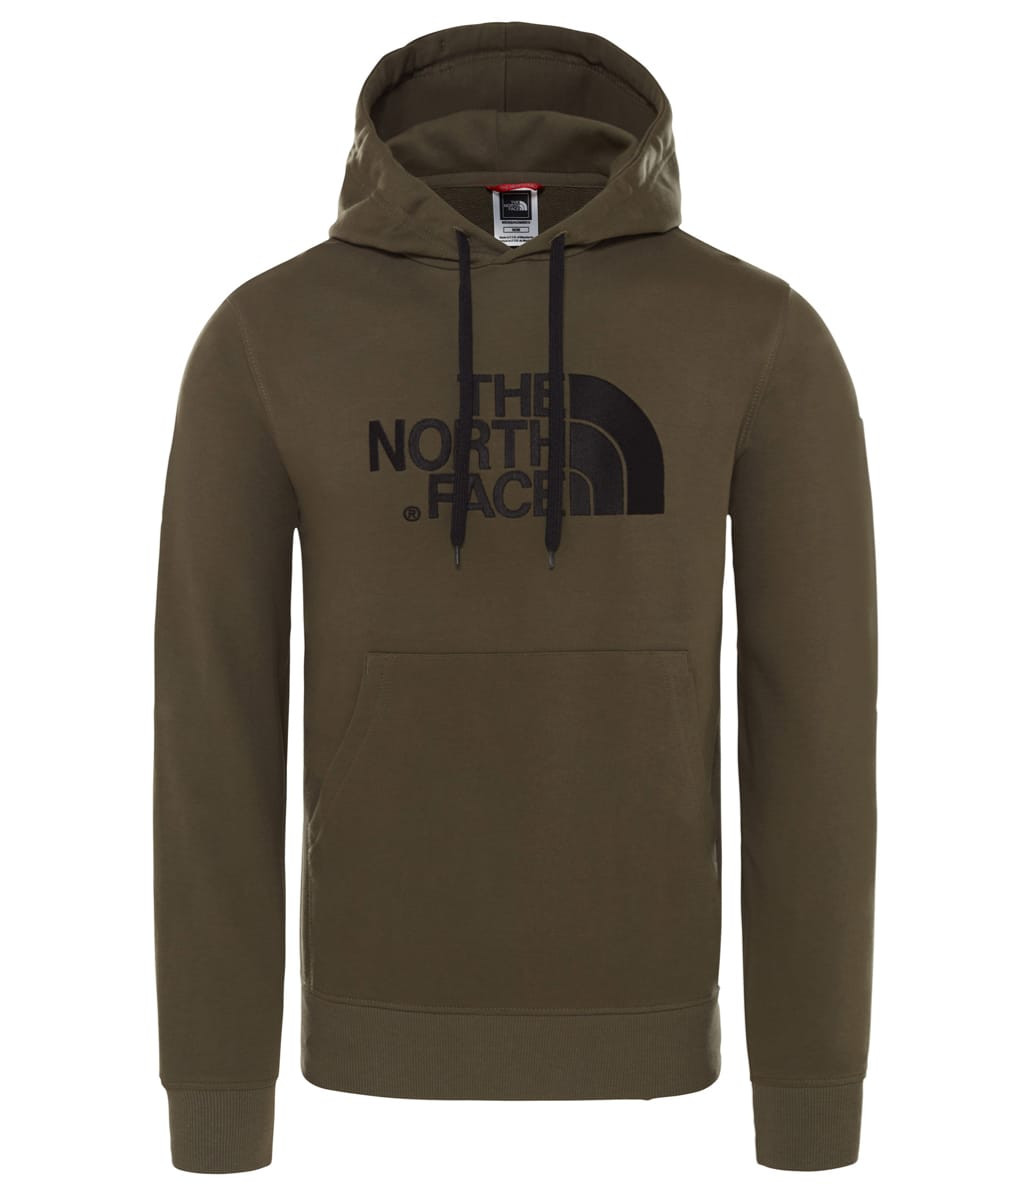 cee60b34 ... The North Face Men's Light Drew Peak Pullover Hoodie New Taupe Green ...